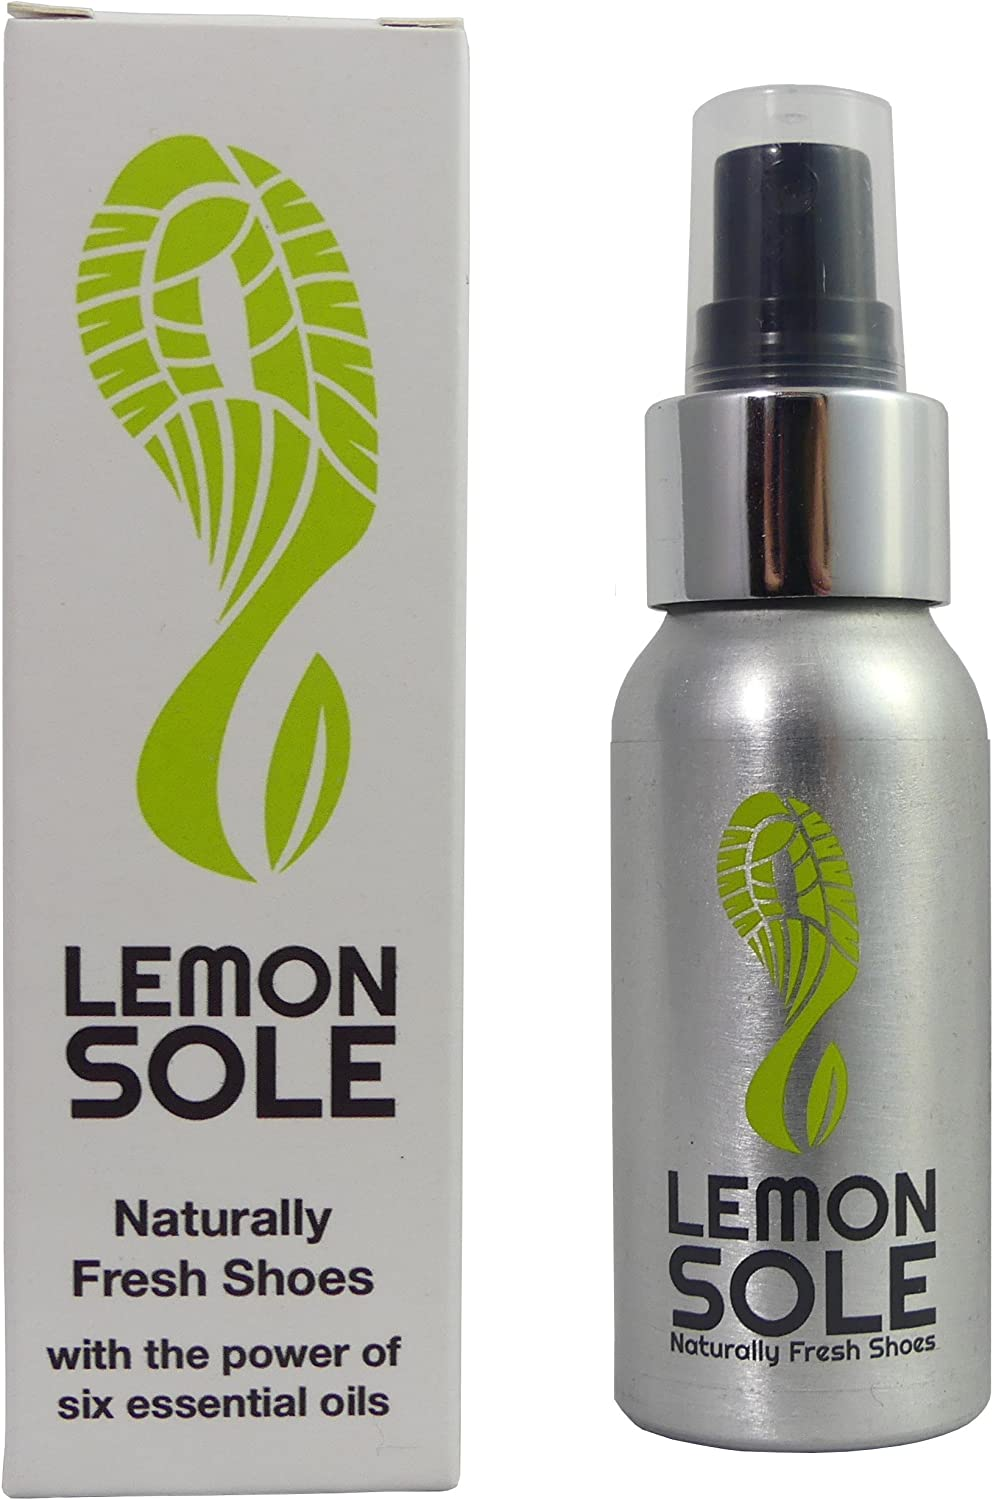 Lemon Sole - POWERFUL & NATURAL Shoe Freshner & Deodoriser with 6 Essential Oils. Great & Effective for Sports